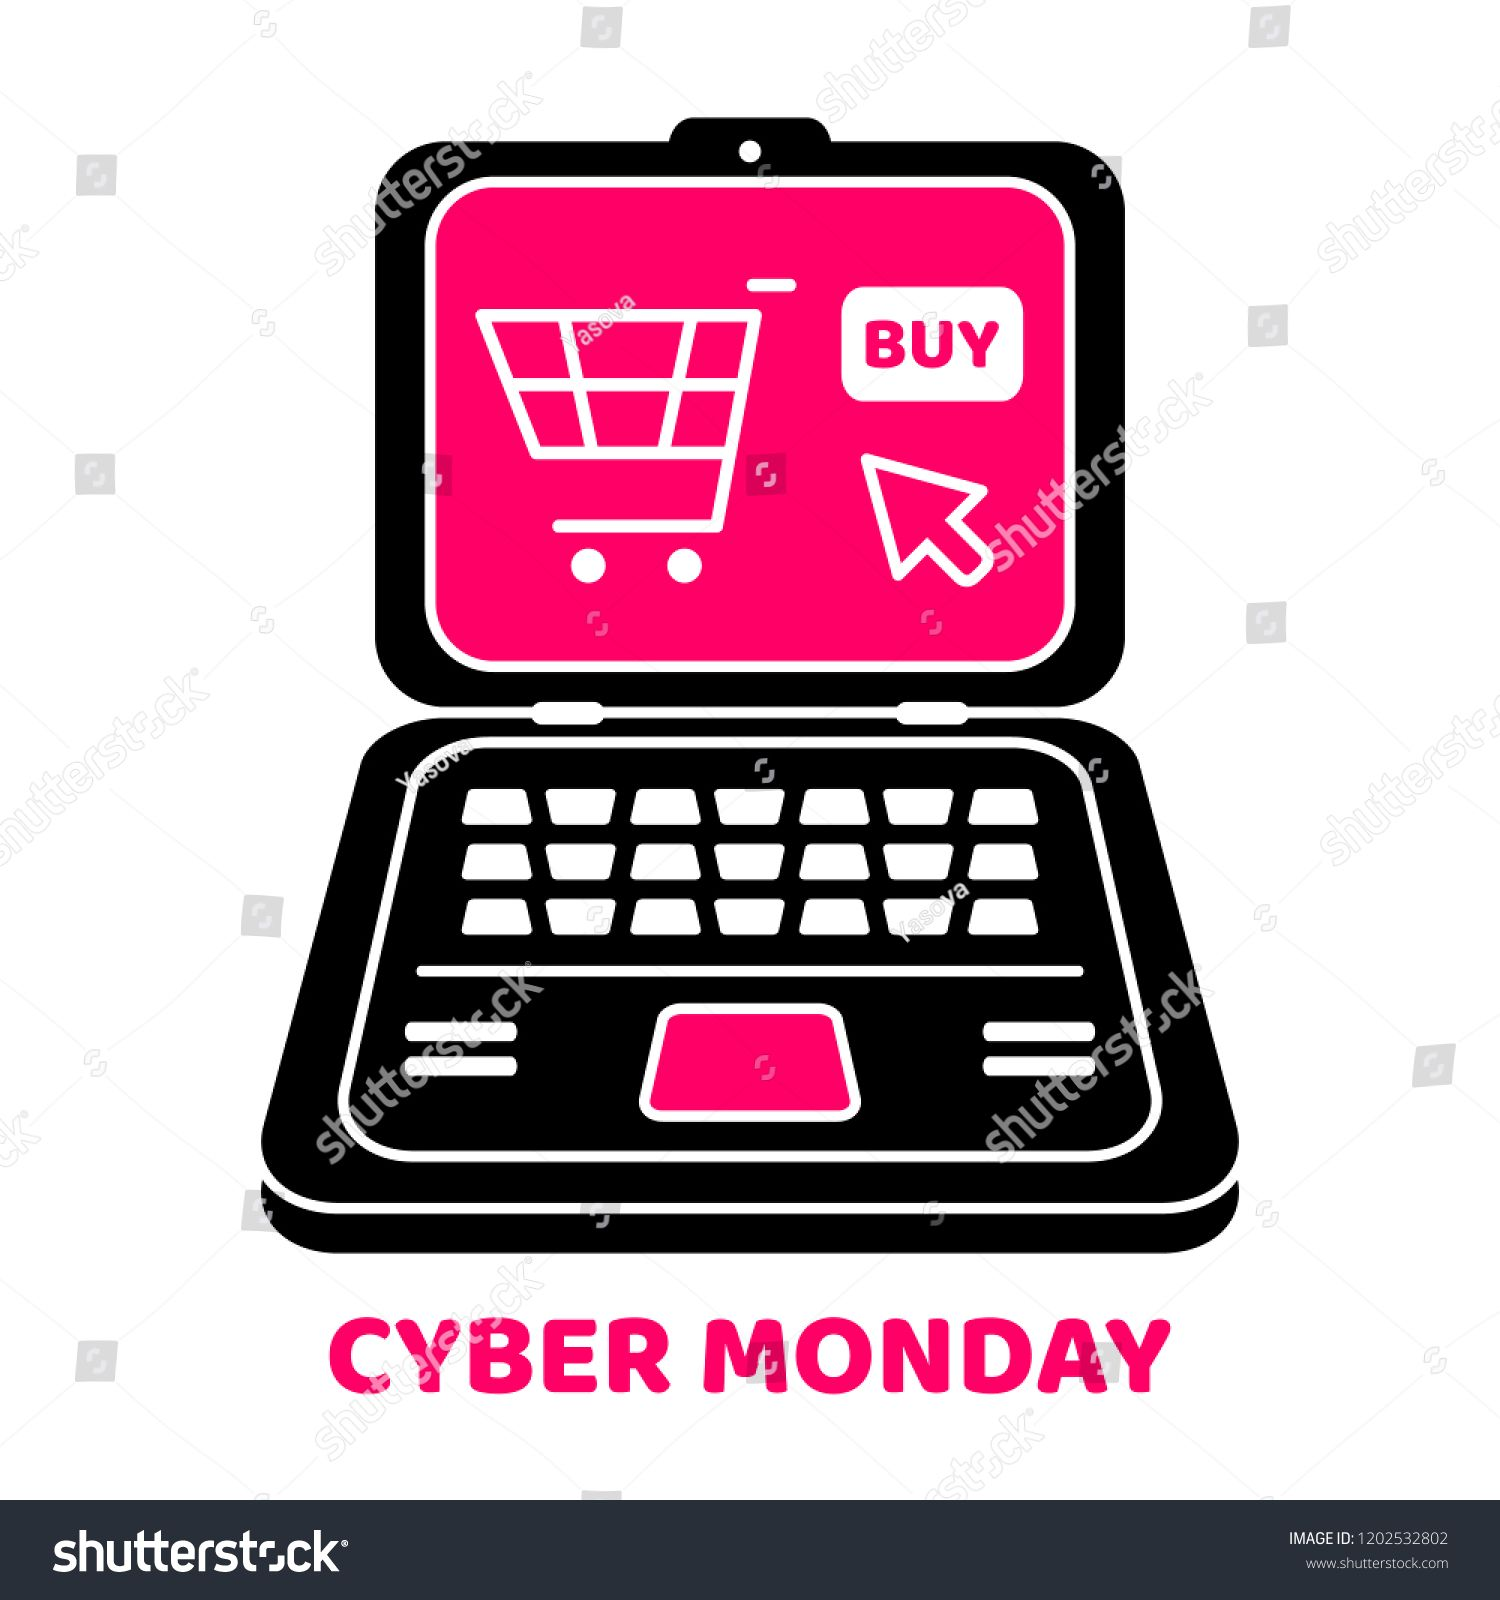 Cyber Monday Design Vector Laptop Computer Holiday Online Shopping Concept On White Backgroun In 2020 Cyber Monday Design Business Technology Holiday Online Shopping